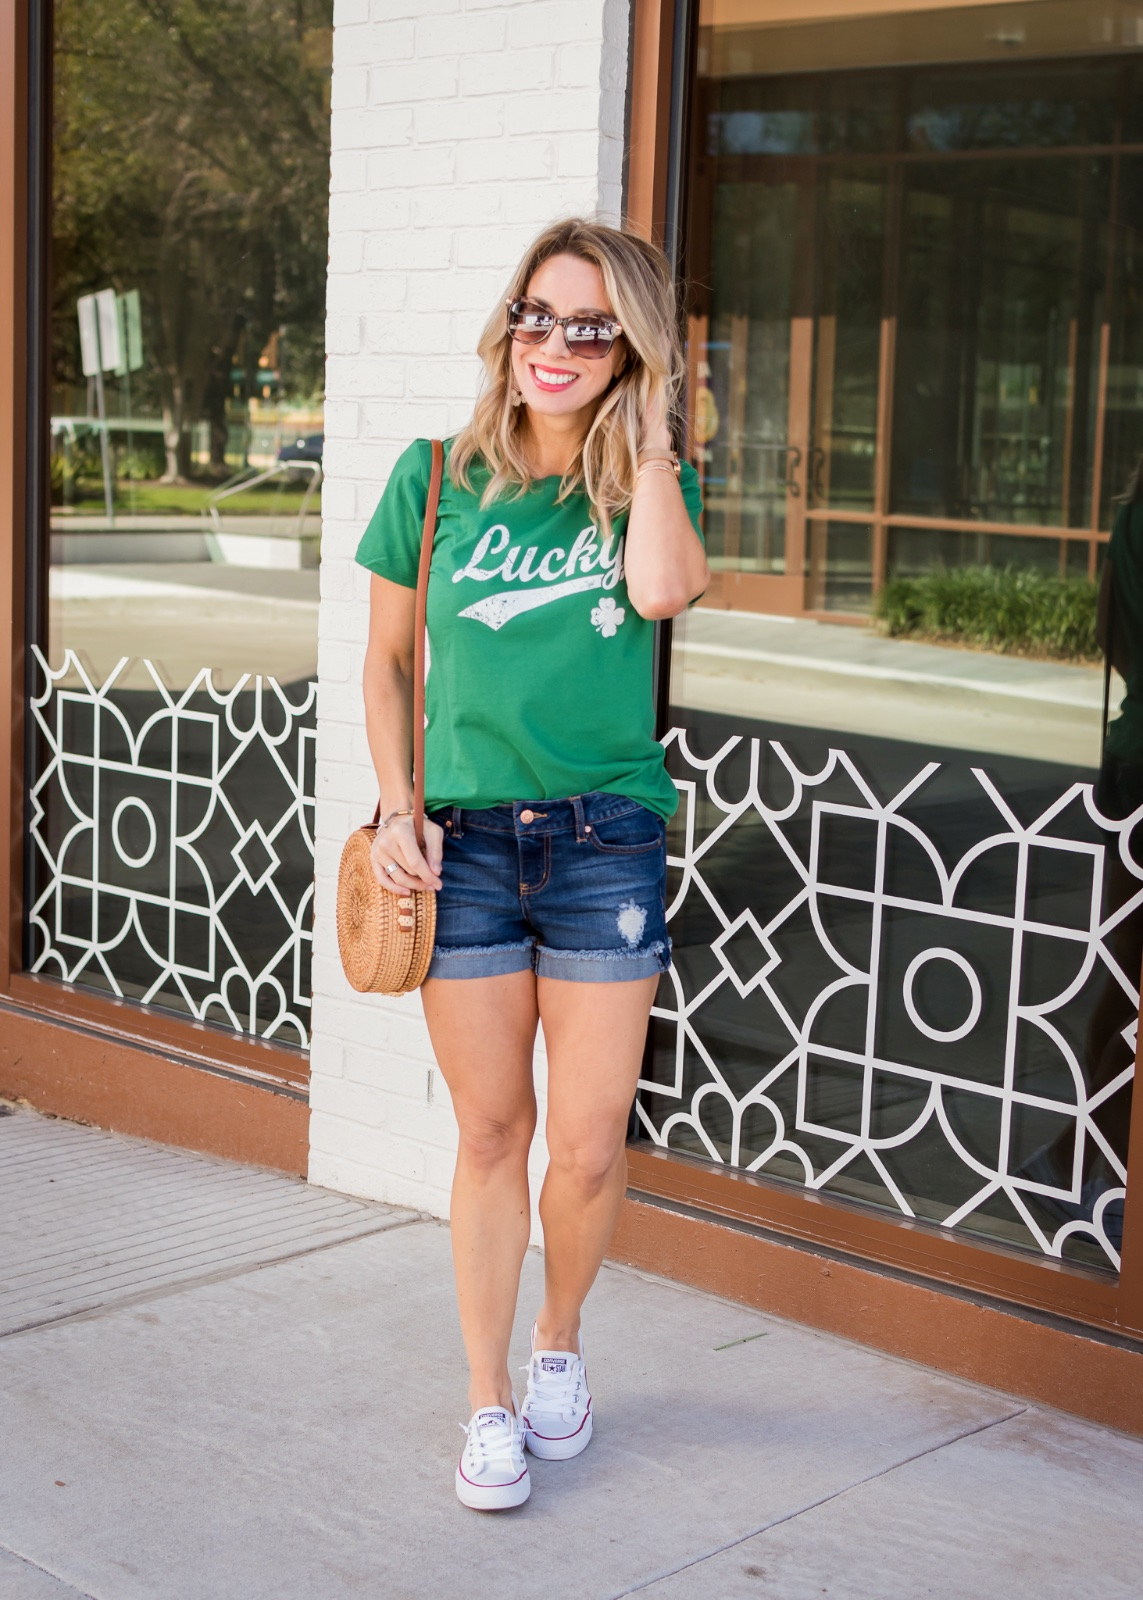 Jean shorts and Lucky t-shirt with converse sneakers